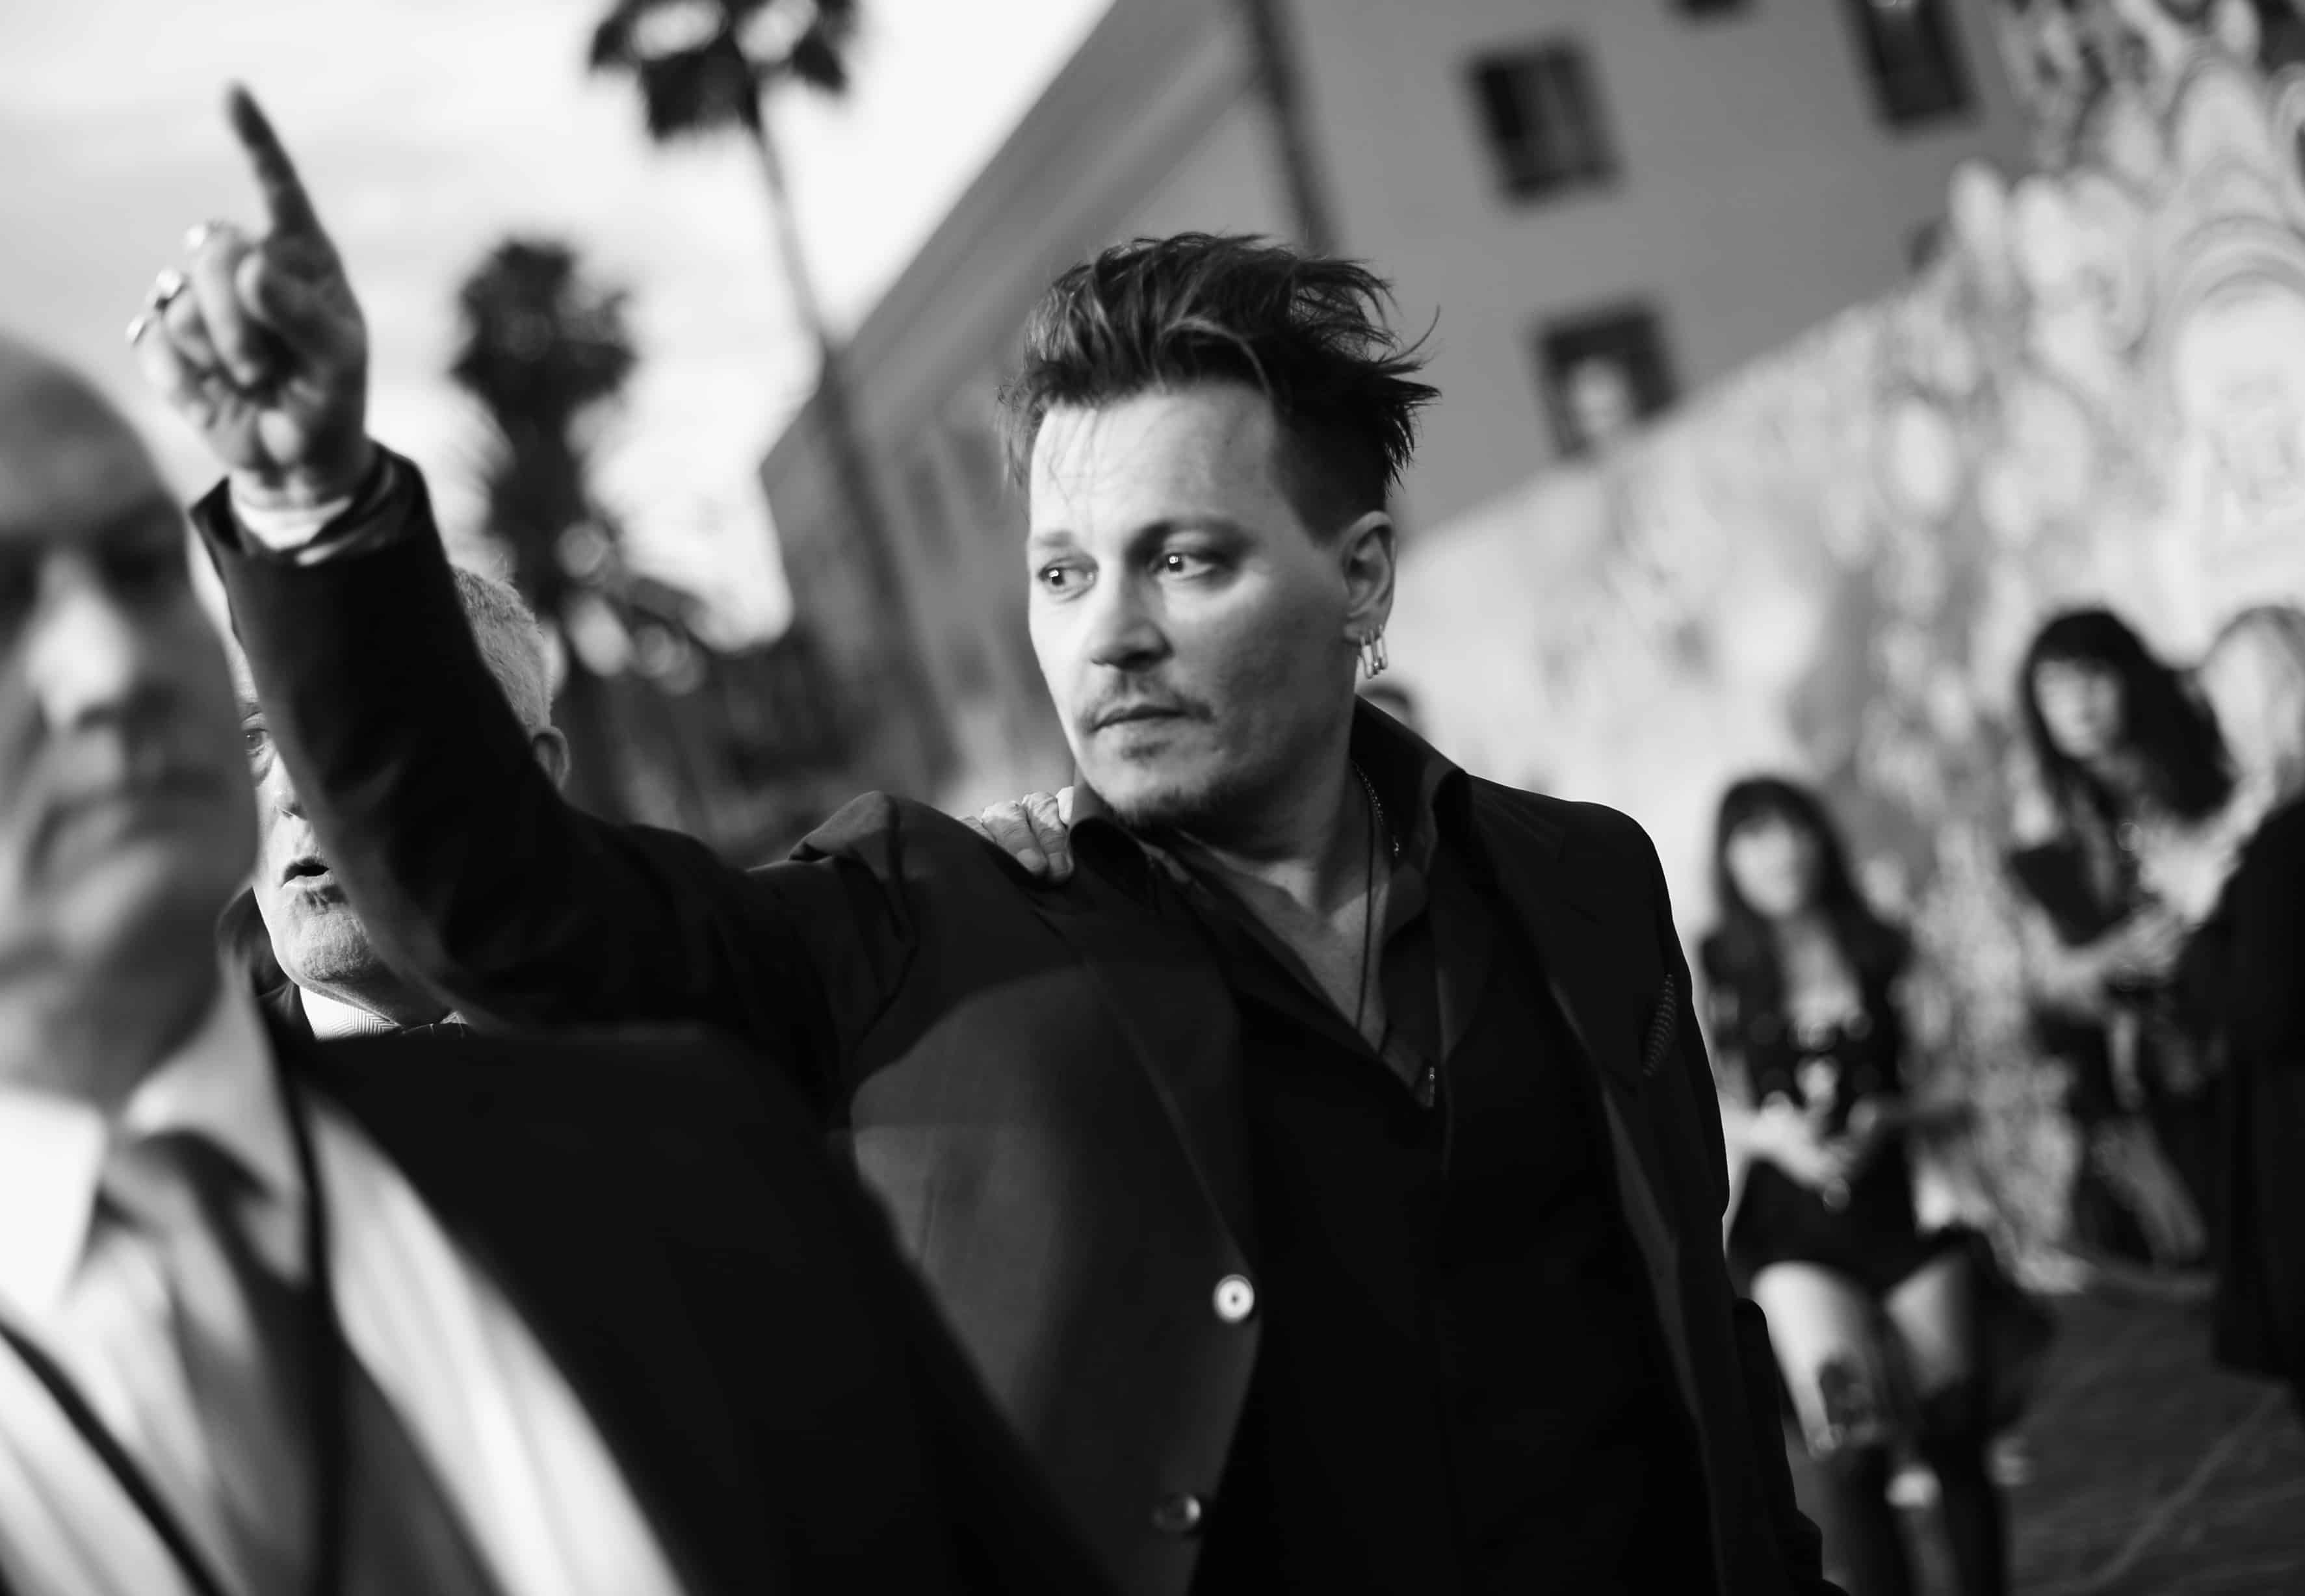 HOLLYWOOD, CA - MAY 23: (EDITORS NOTE: Image has been shot in black and white. Color version not available.) Actor Johnny Depp attends Disney's 'Alice Through the Looking Glass' premiere with the cast of the film, which included Johnny Depp, Anne Hathaway, Mia Wasikowska and Sacha Baron Cohen at the El Capitan Theatre on May 23, 2016 in Hollywood, California. (Photo by Charley Gallay/Getty Images for Disney) *** Local Caption *** Johnny Depp